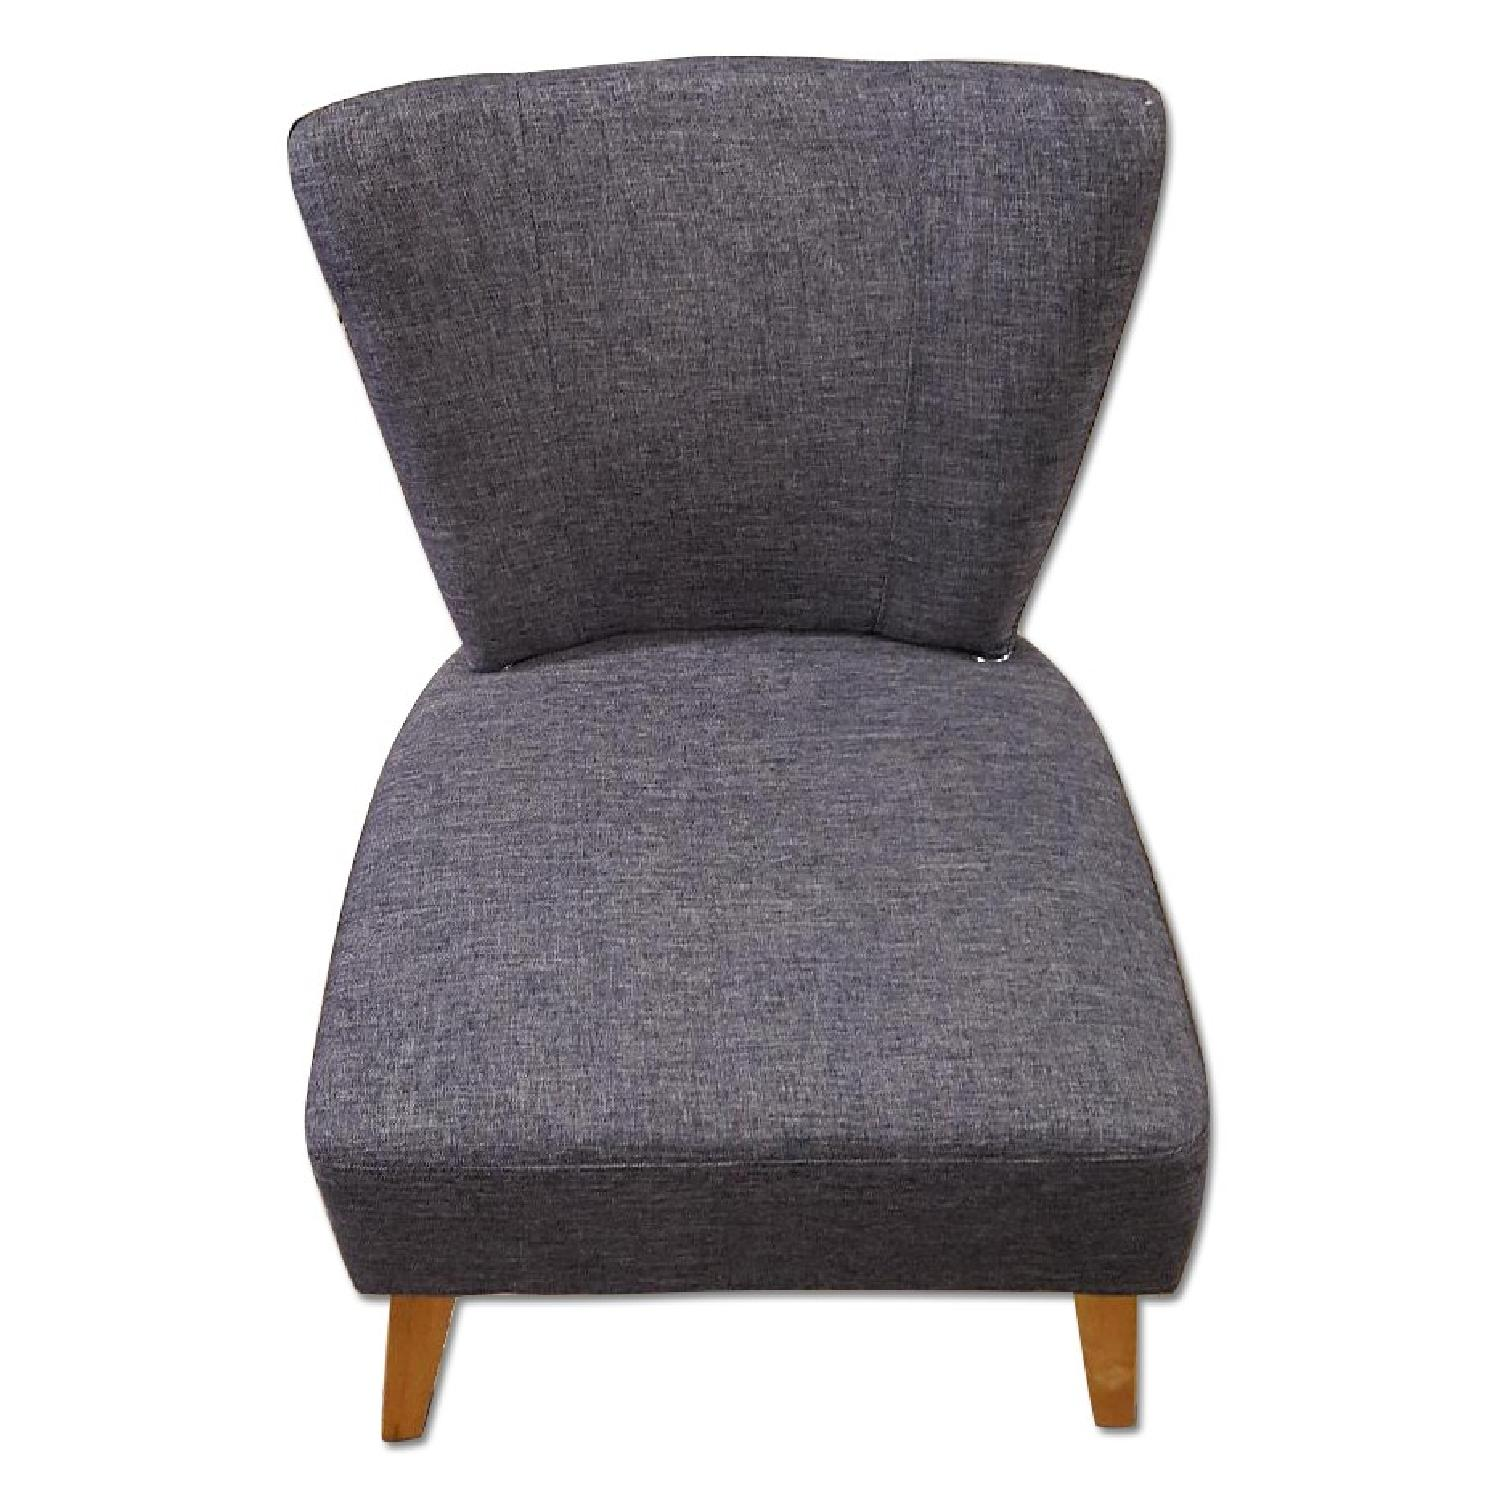 Sauder Gray Accent Chair - image-0